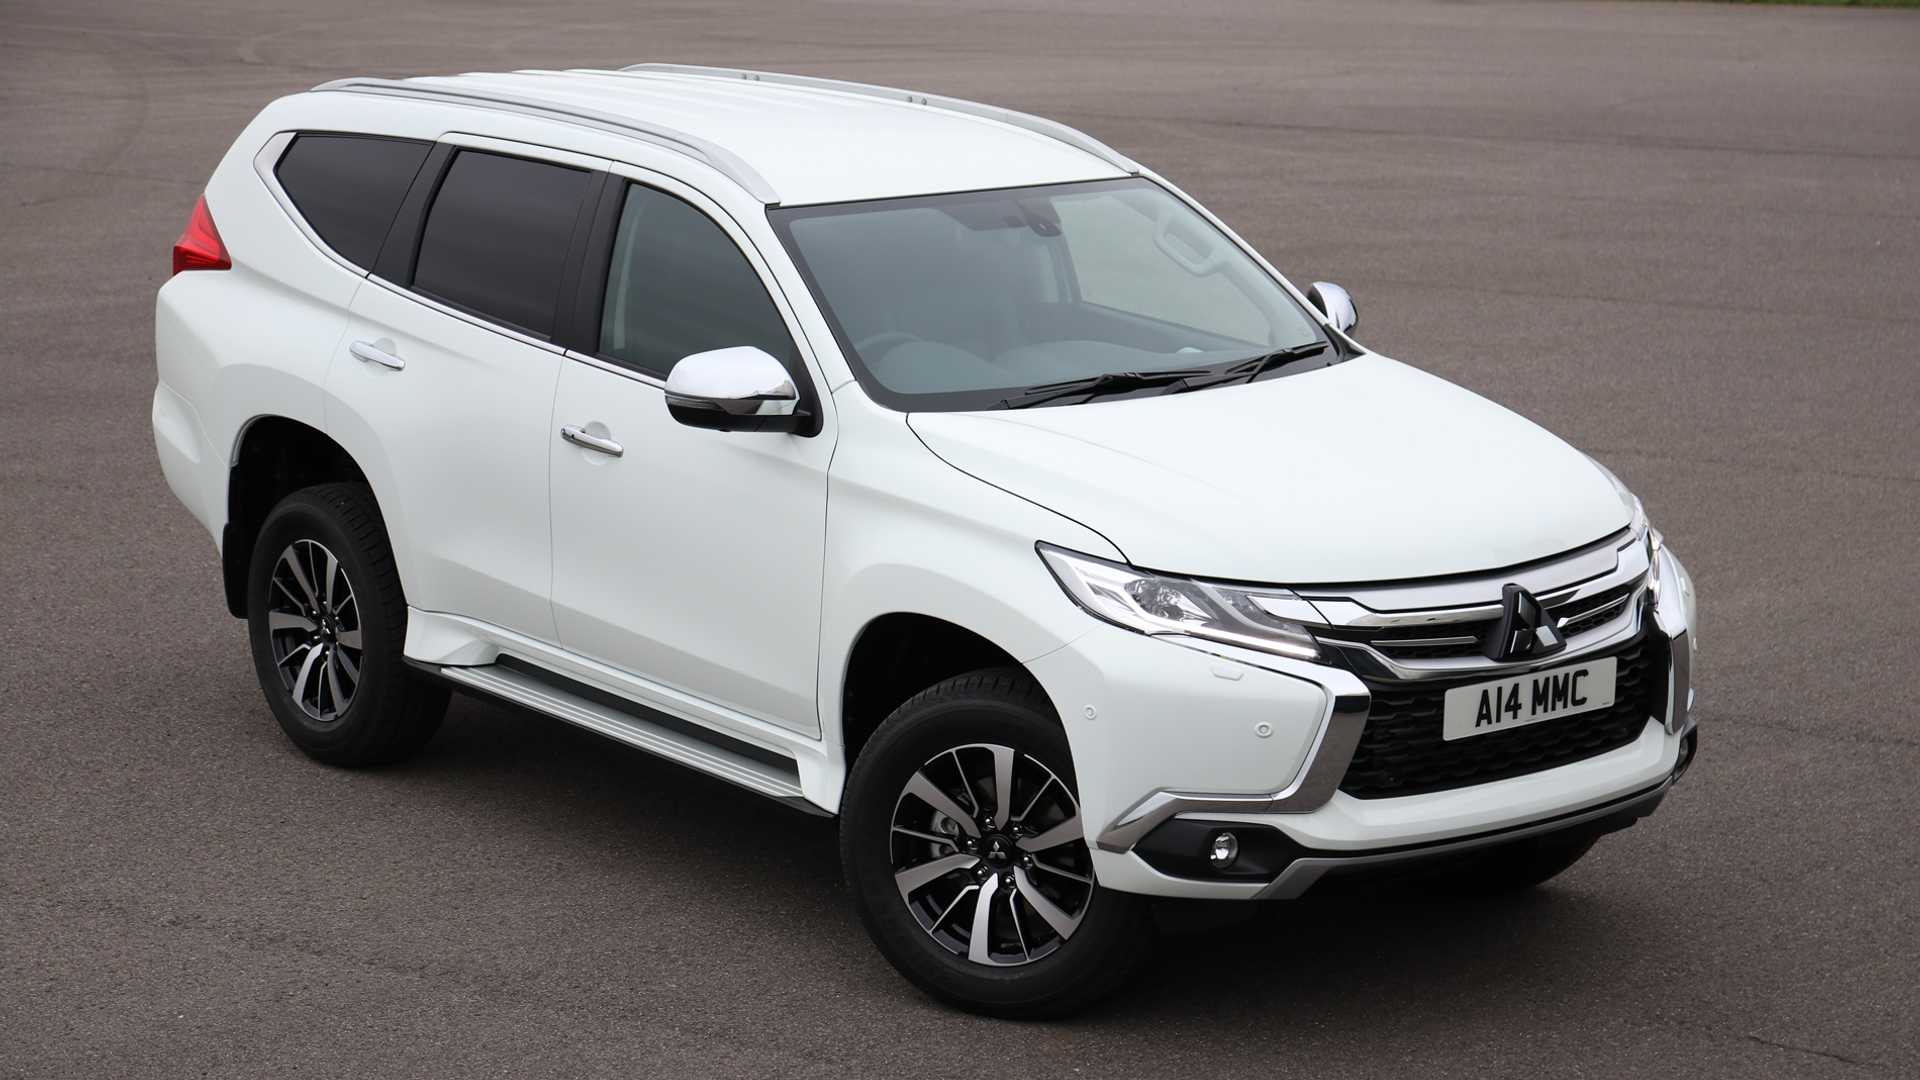 This Mitsubishi Shogun Looks Like An SUV, But It's A Van